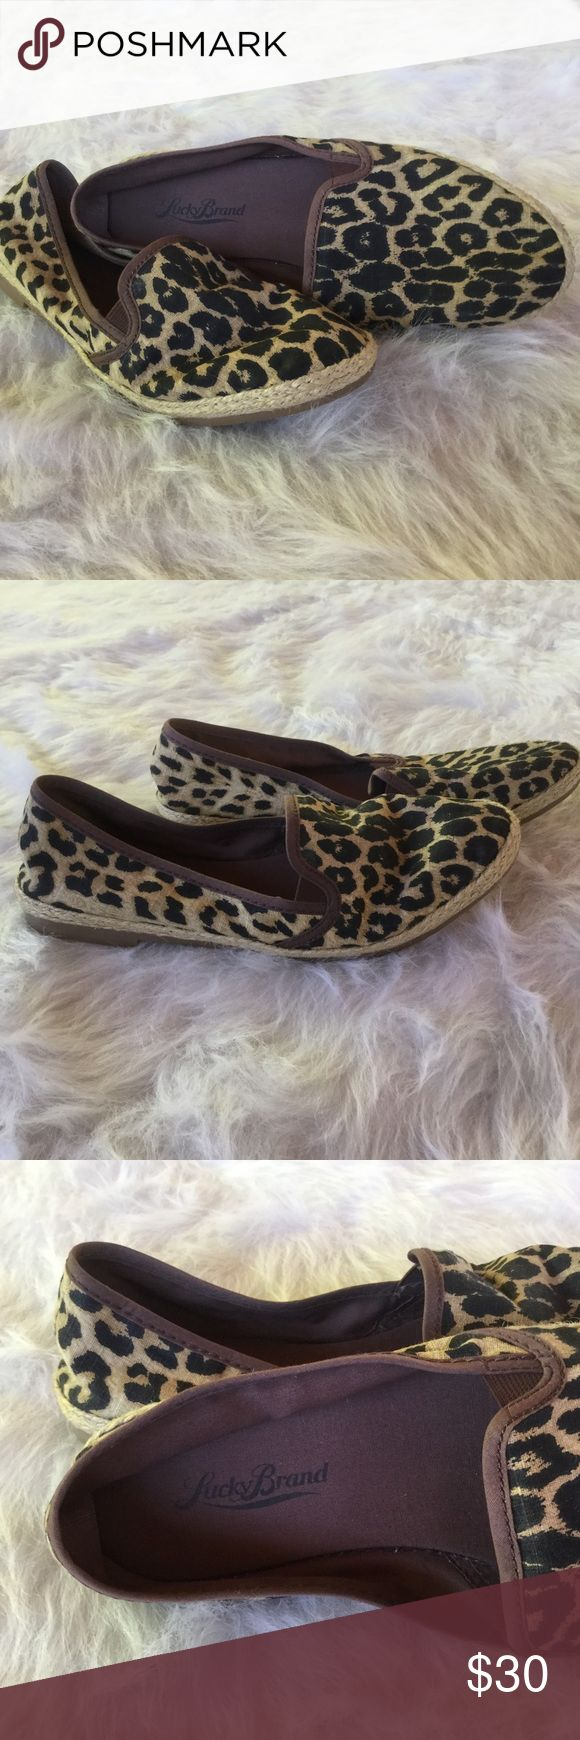 Lucky Brand Leopard Print Espadrille Flats These are a pair of summer ready flat dark brown and tan animal print shoes from Lucky Brand. Size 6.5, worn perhaps once. Fabric upper. (997) Lucky Brand Shoes Flats & Loafers